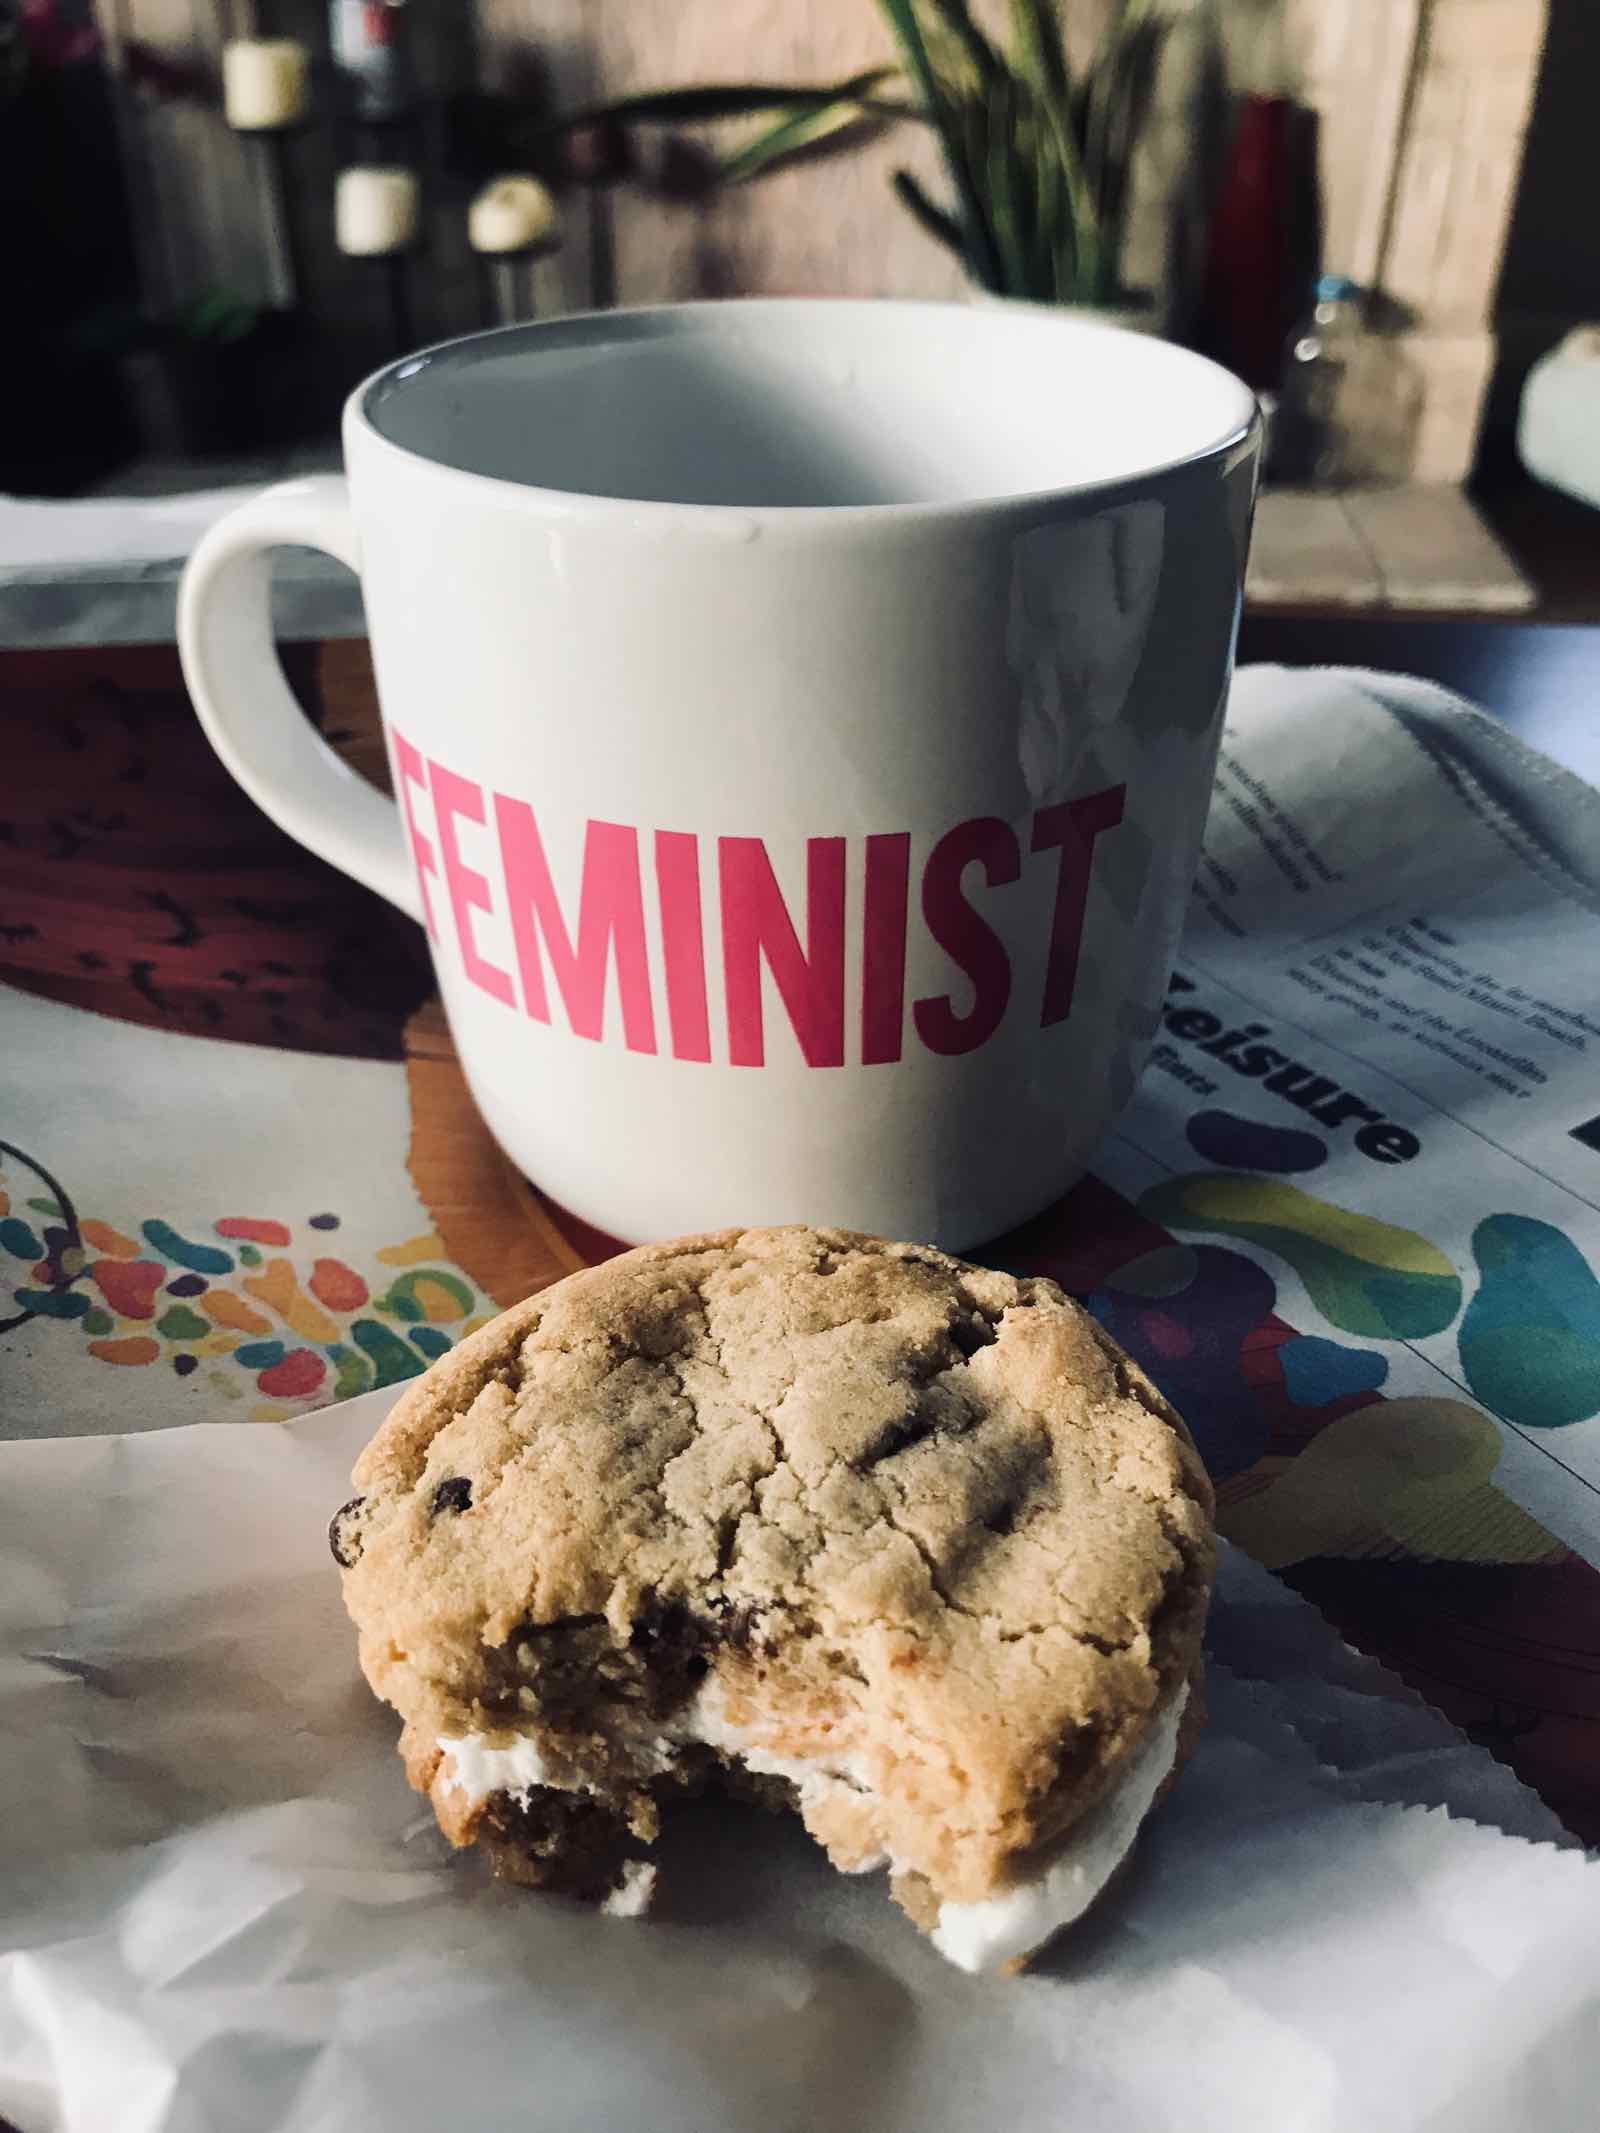 feminist-mug-glutenfree-cookie-sandwich.jpg